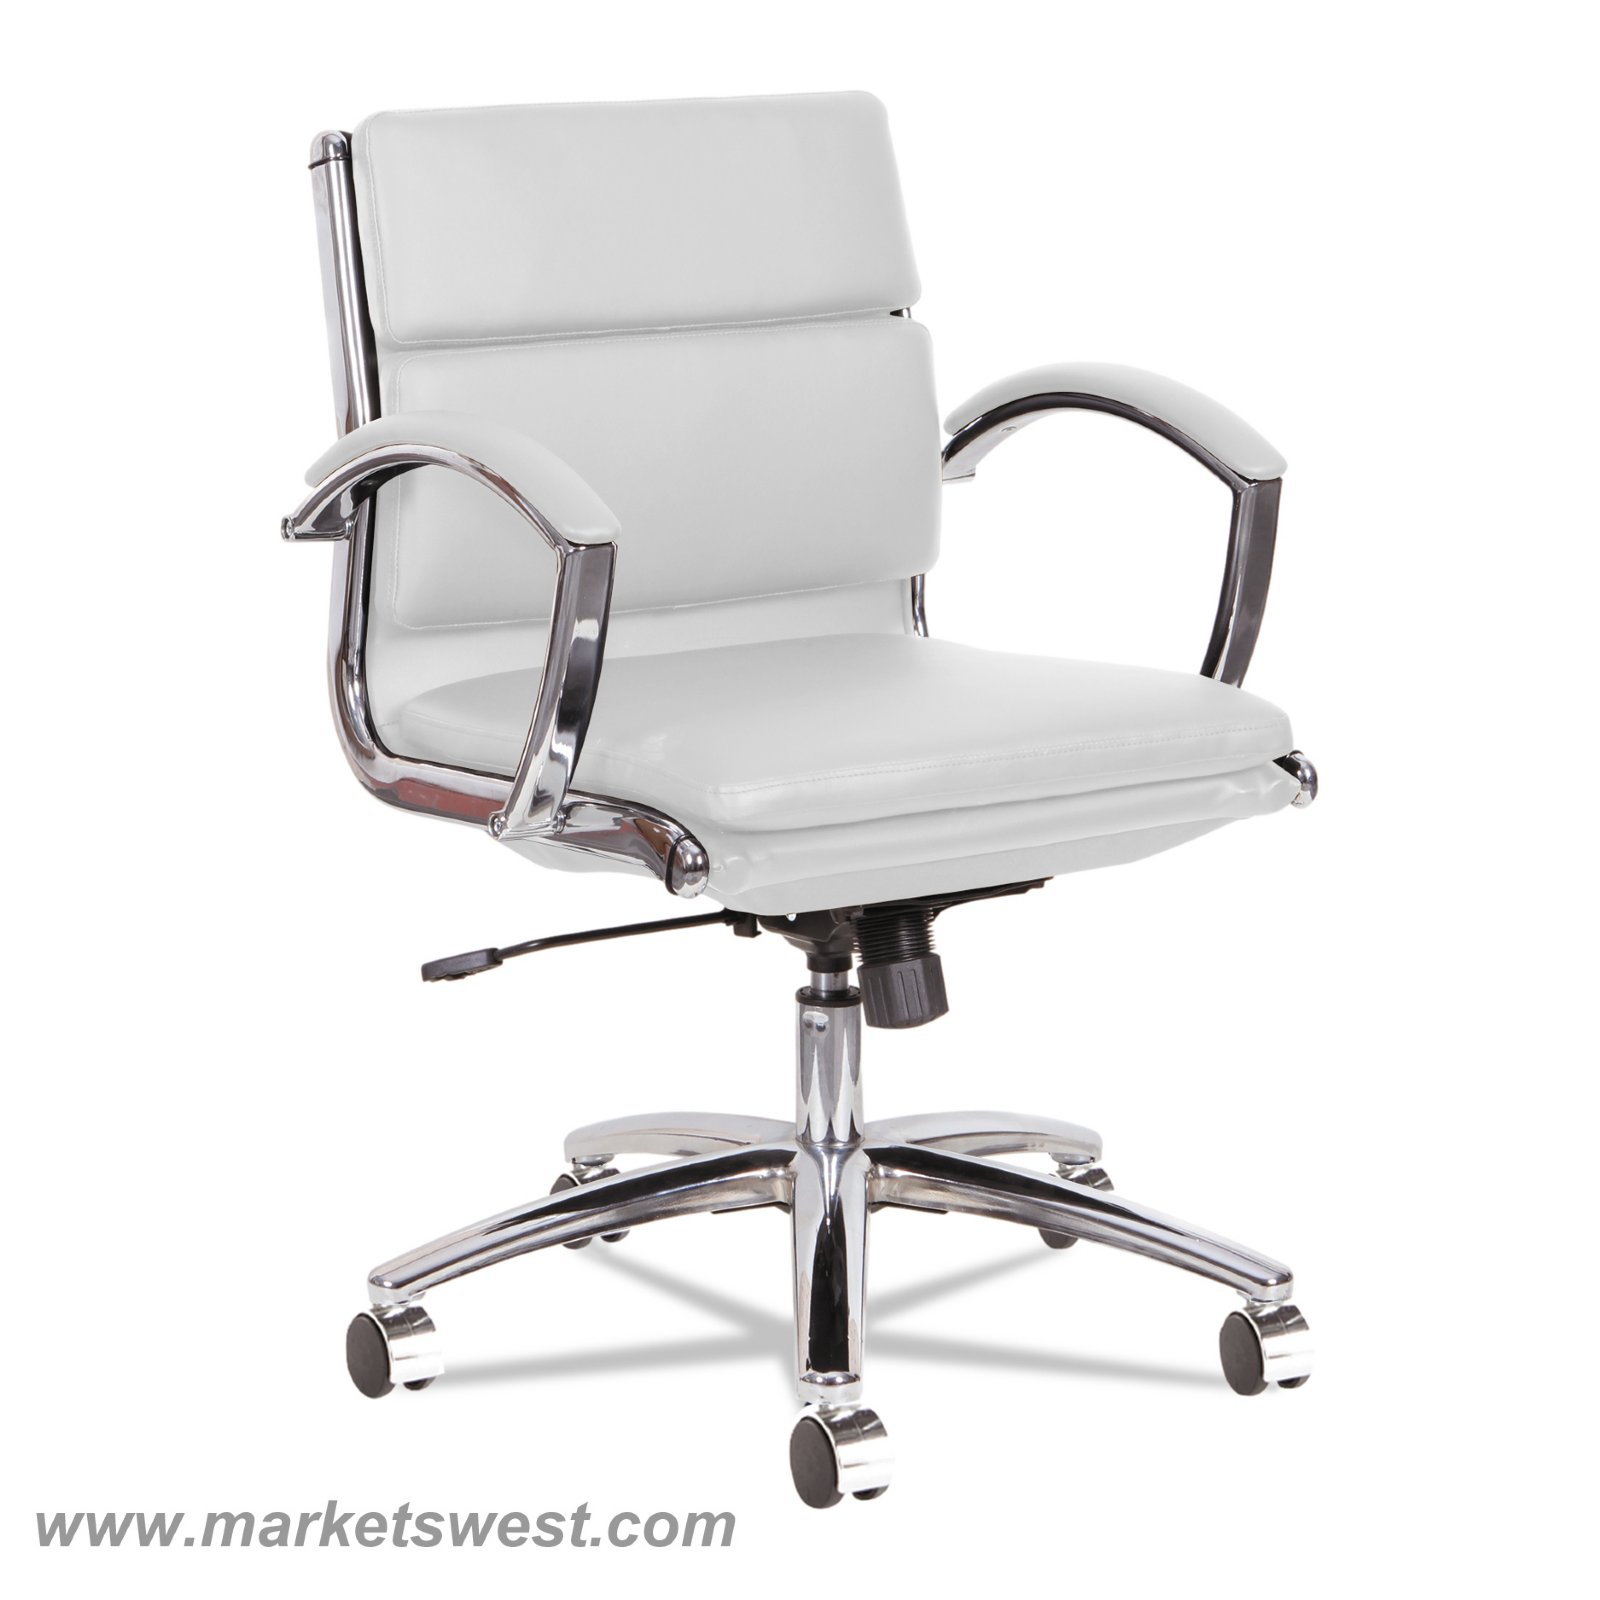 leather chrome chair accent chairs clearance neratoli low back swivel tilt red soft touch loading